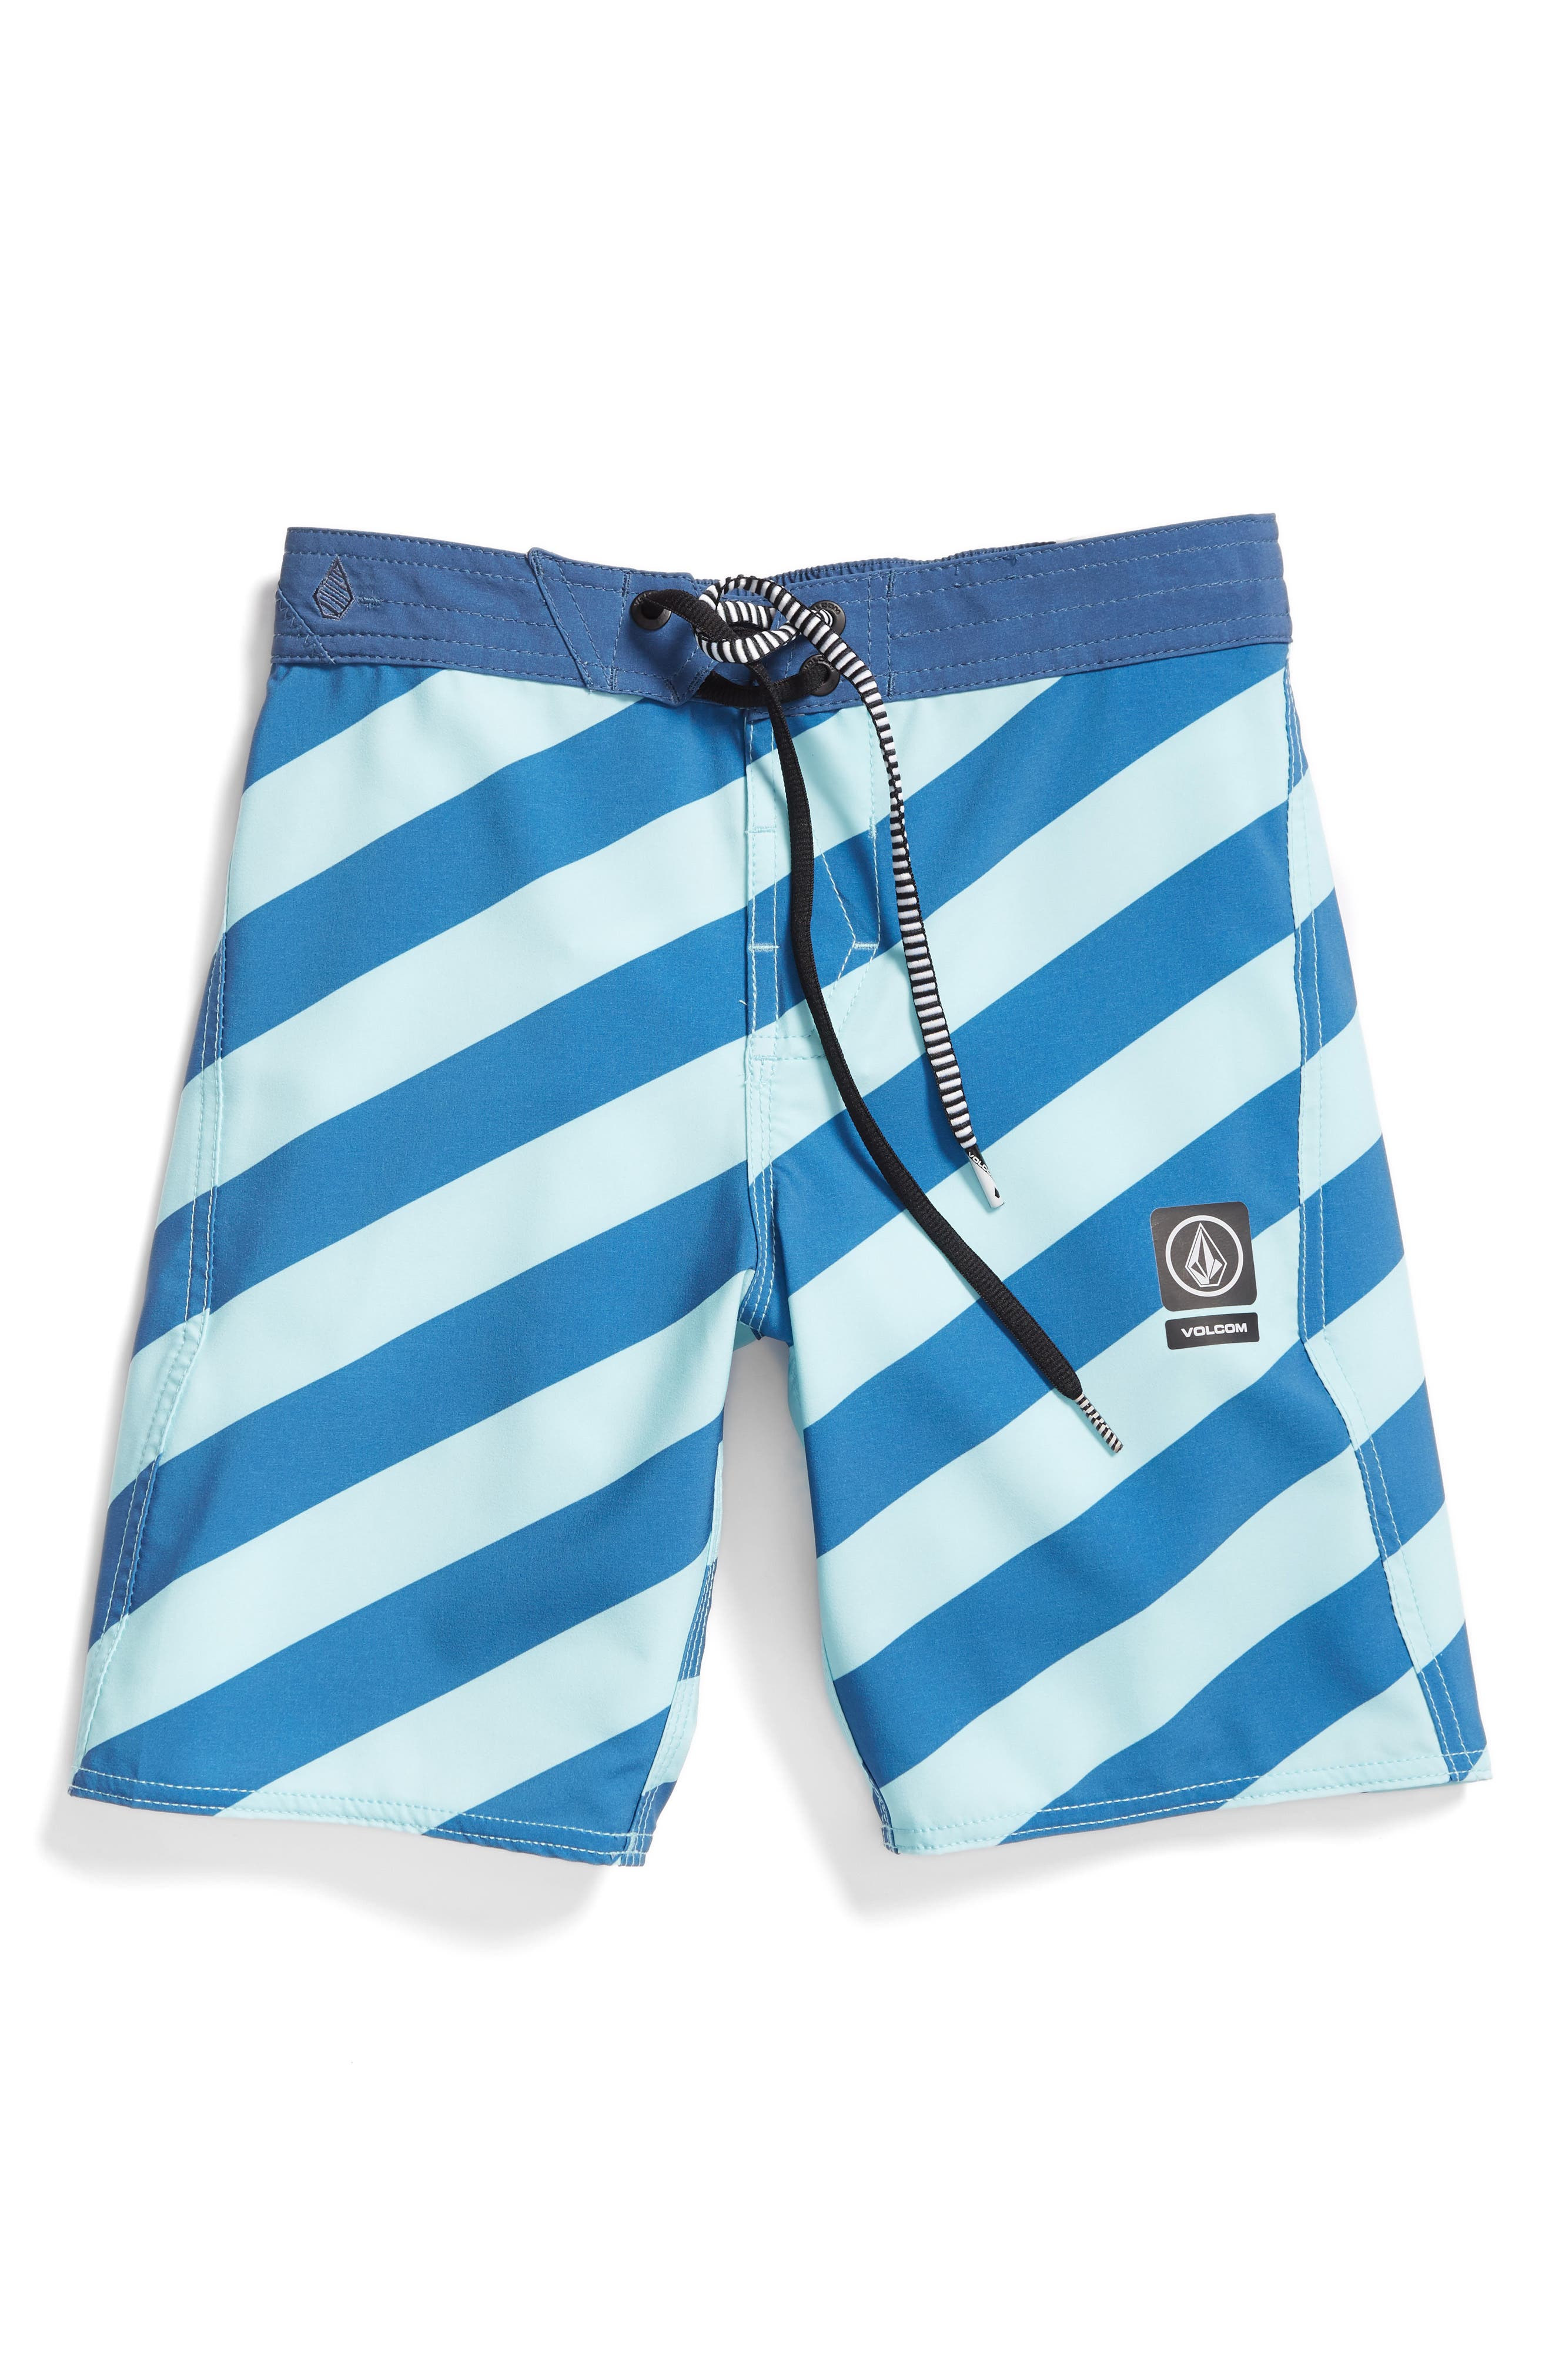 Stripey Jammer Board Shorts,                         Main,                         color, Deep Water